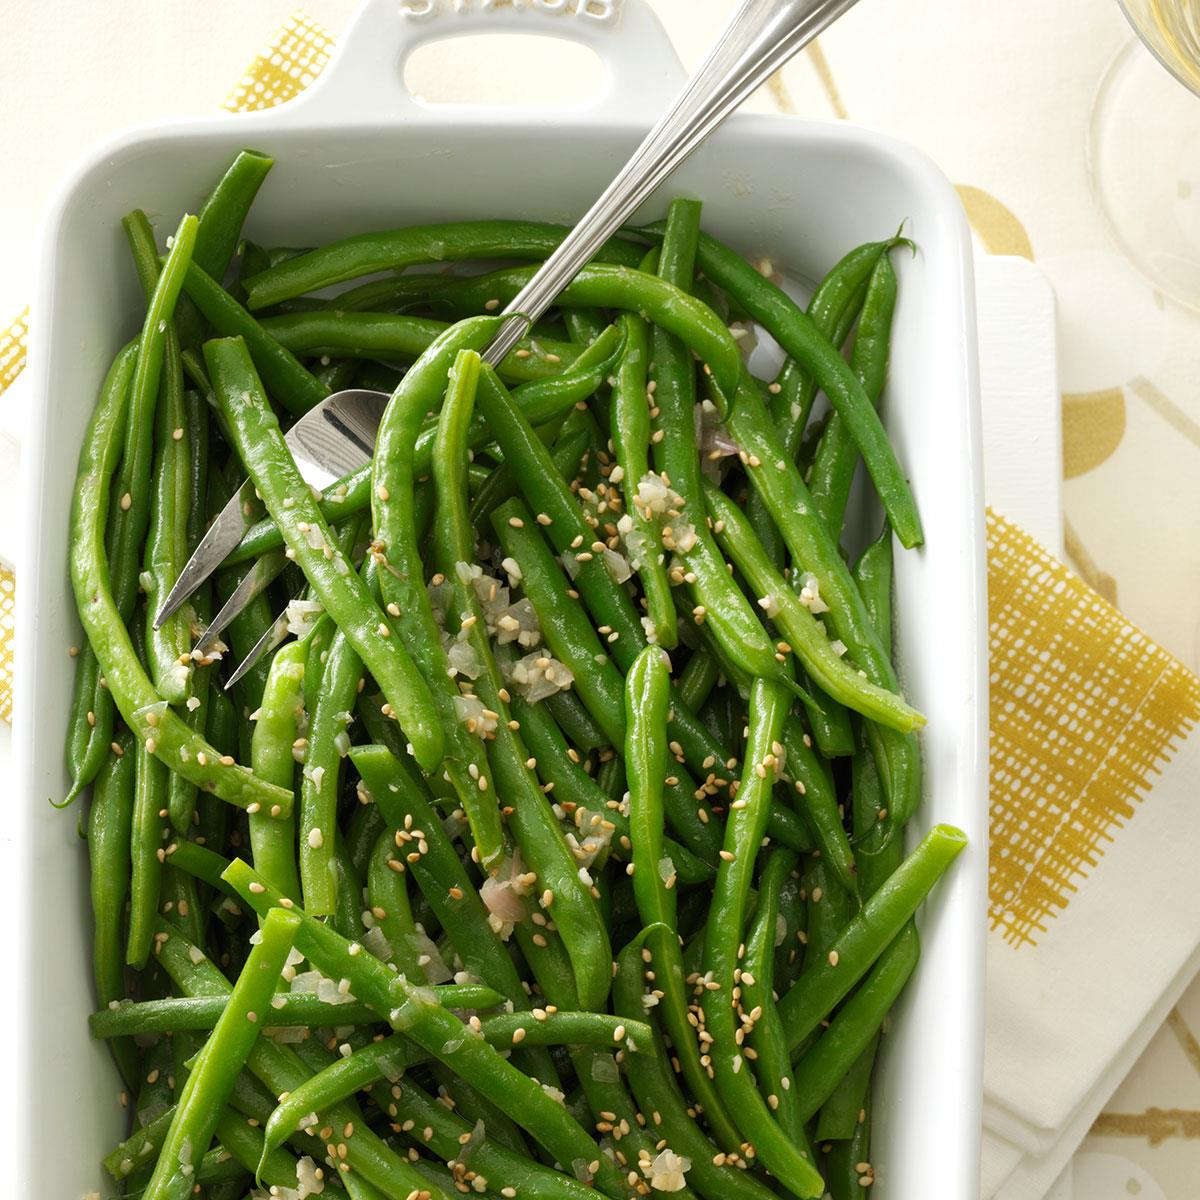 Green Beans Tossed With Shallots and Sesame